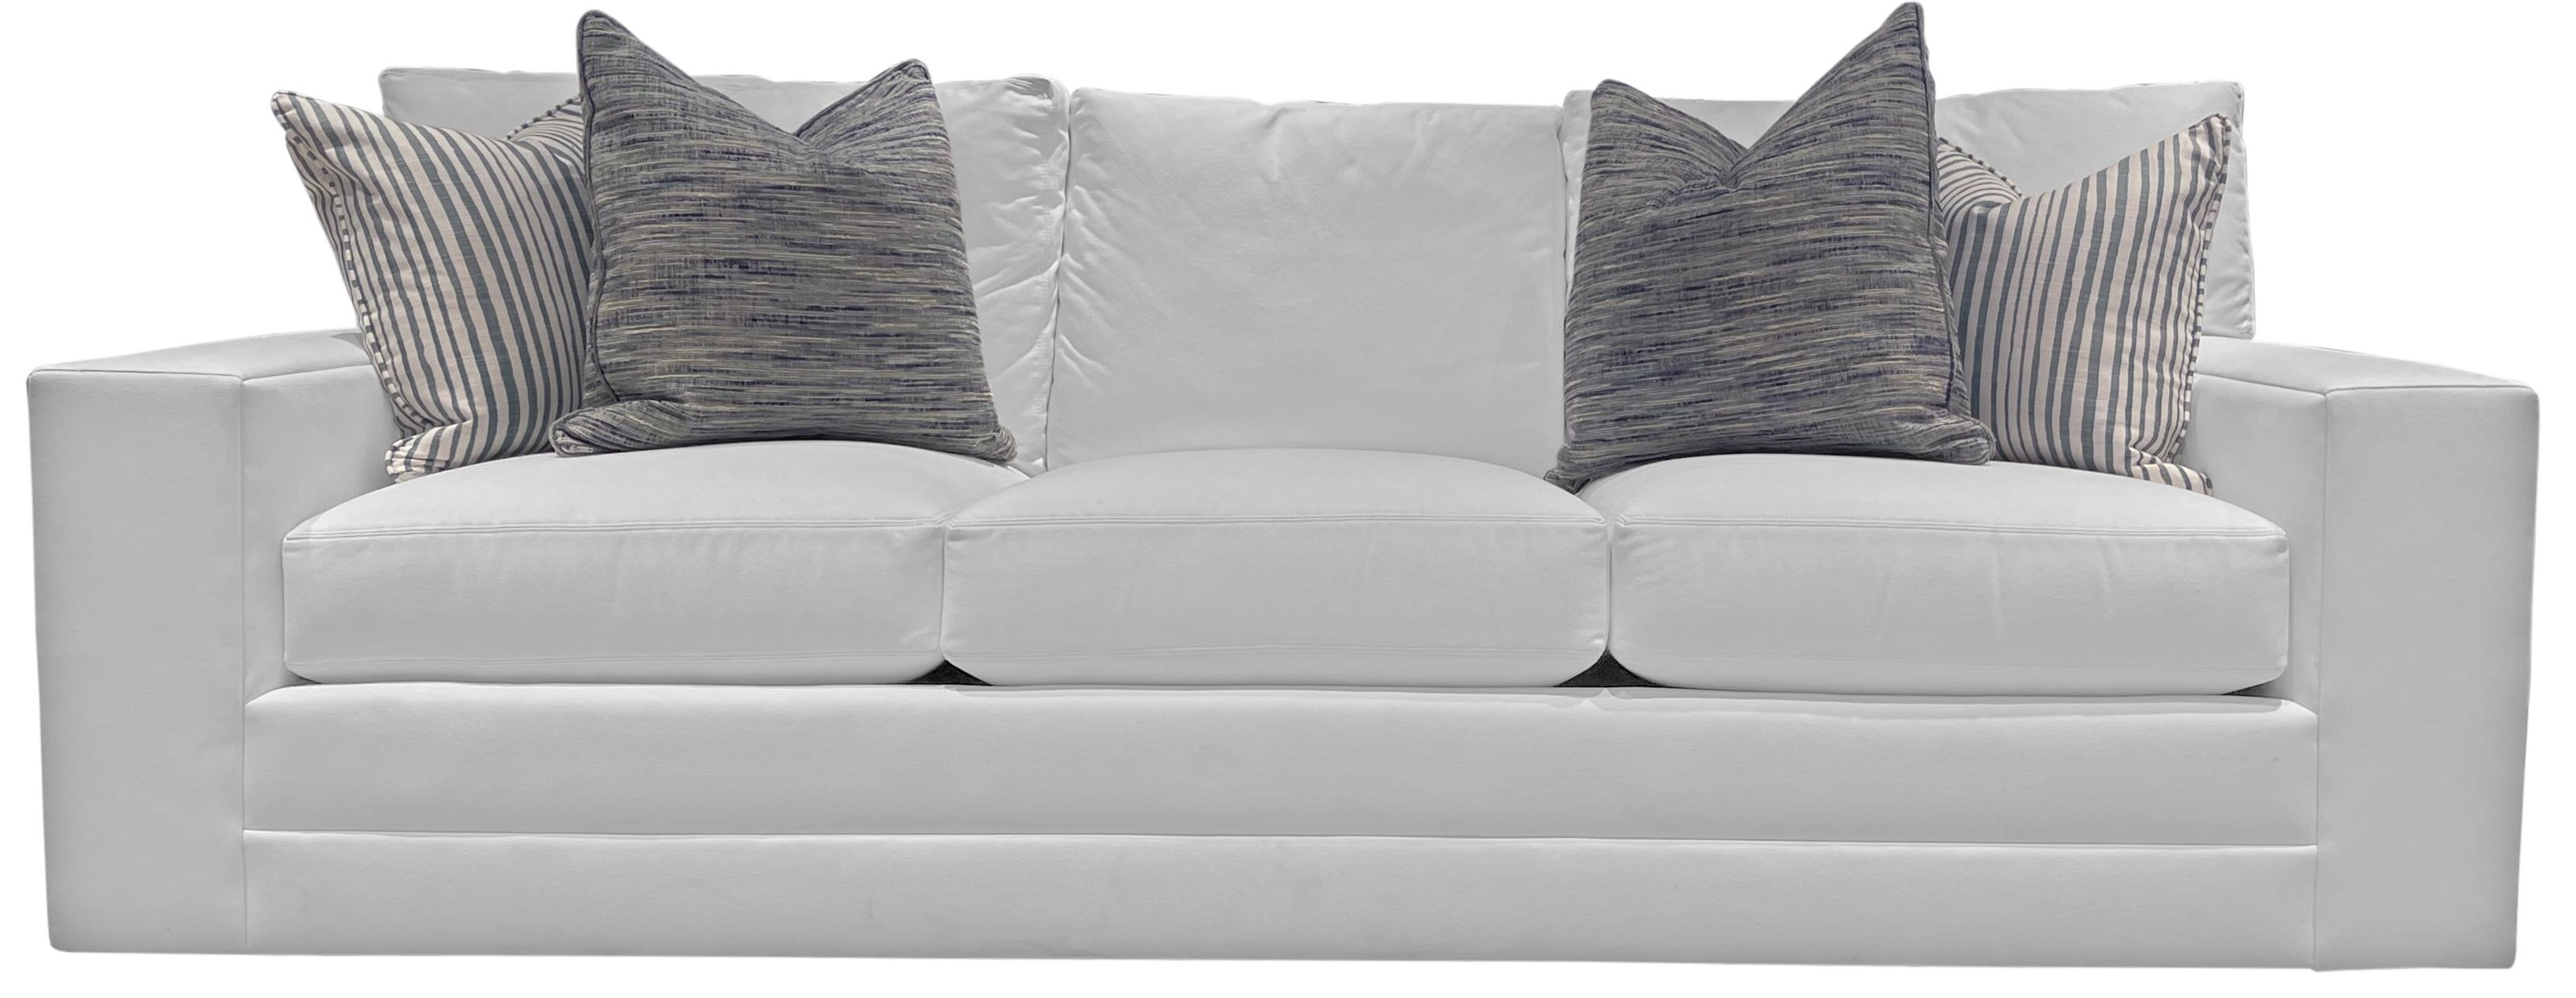 Bedford Sofa by Lexington at C. S. Wo & Sons Hawaii